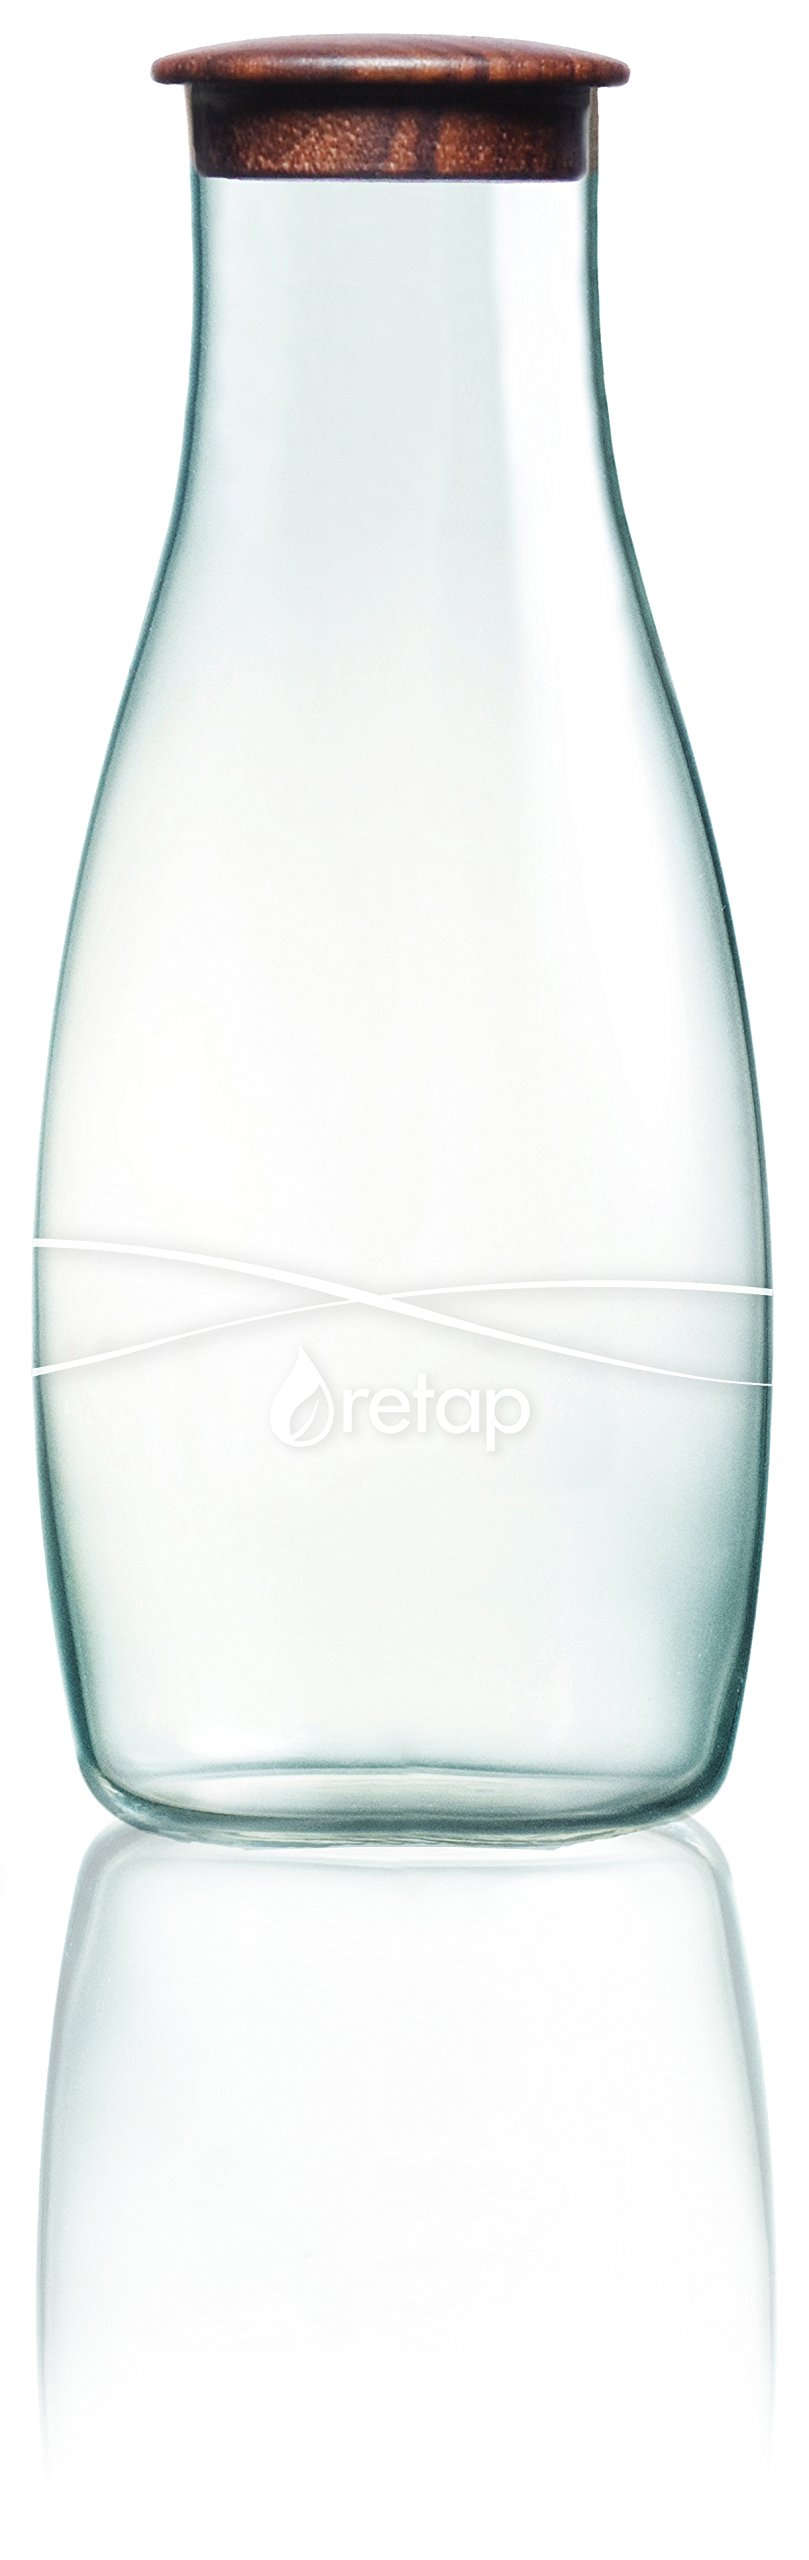 Retap Borosilicate Glass Water Carafe, Walnut Wood, 42 oz by Retap (Image #1)